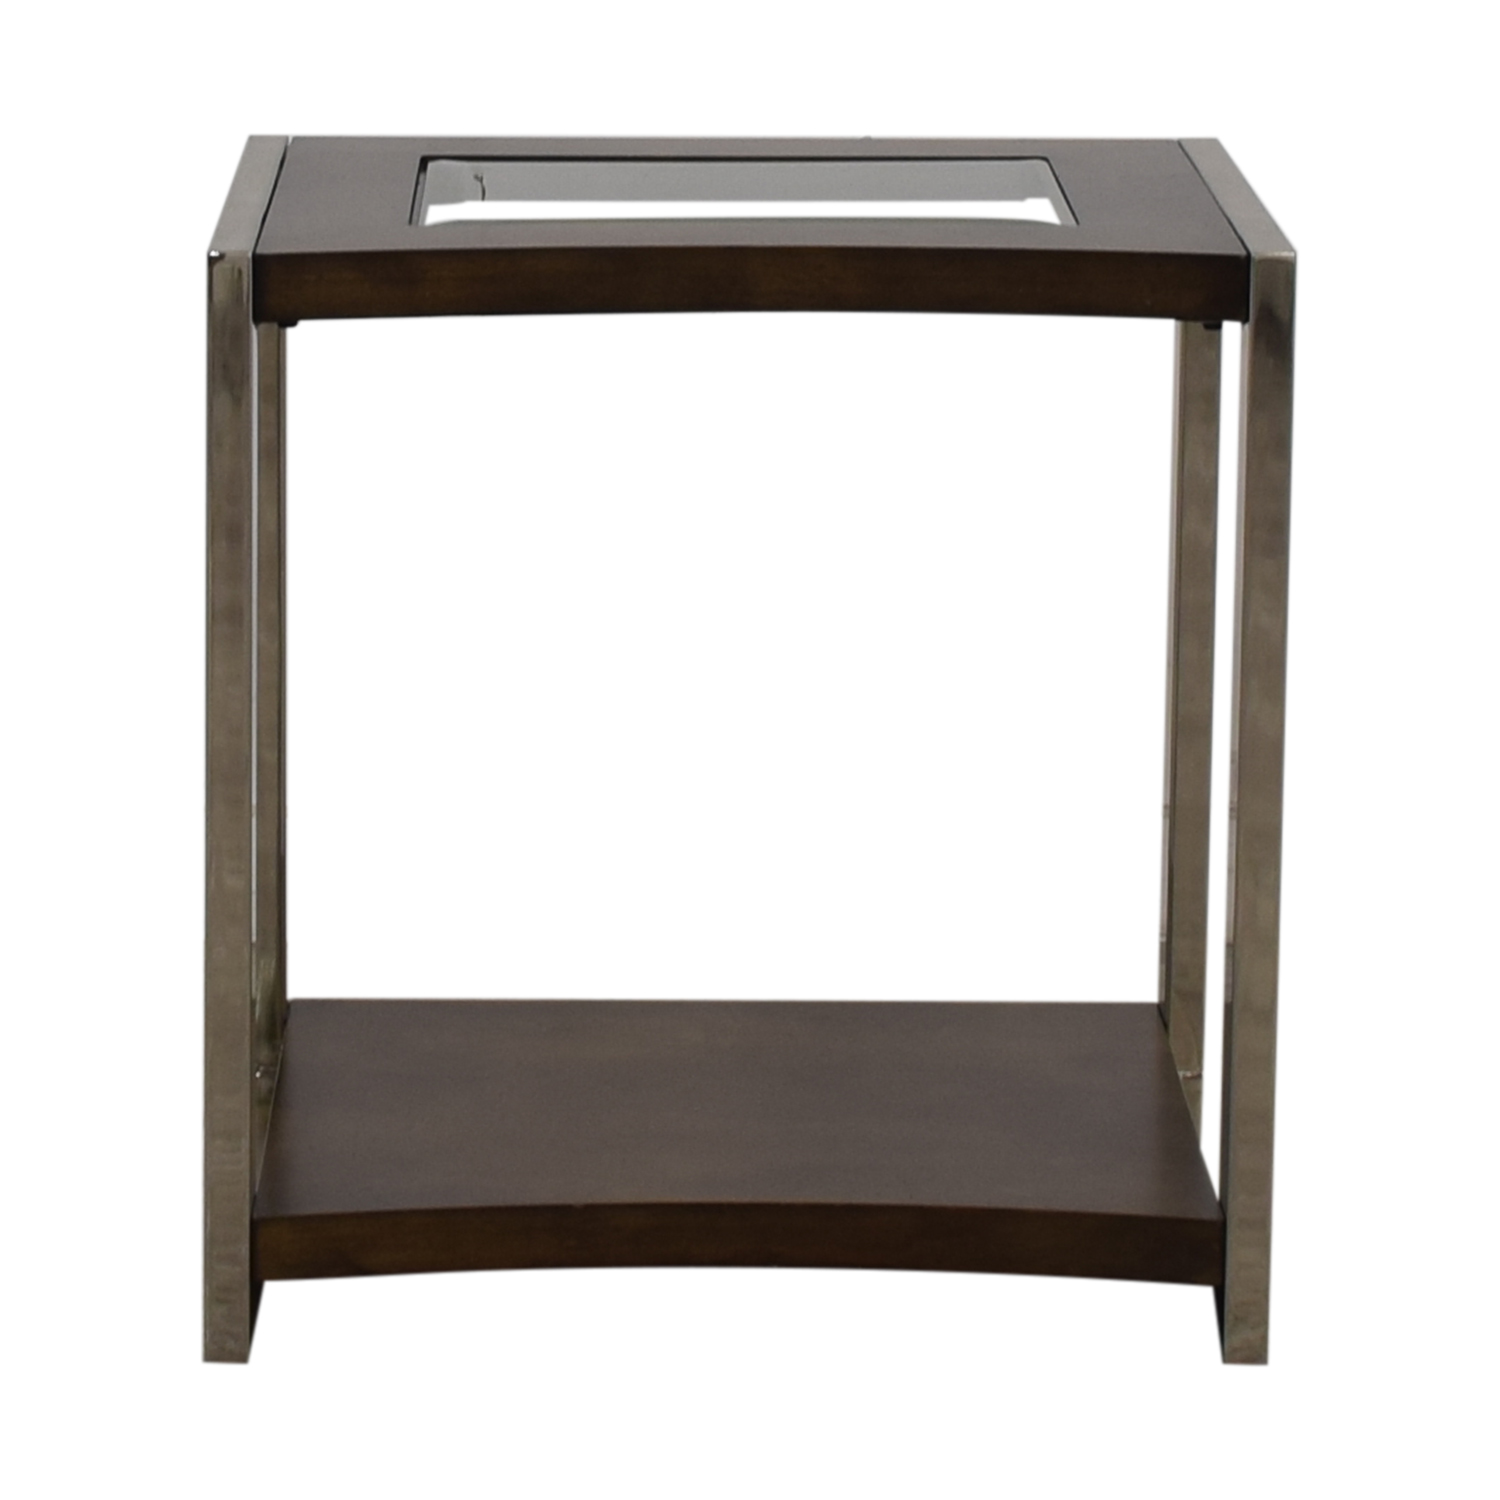 Raymour & Flanigan Raymour & Flanigan Glass Wood and Chrome End Table dimensions